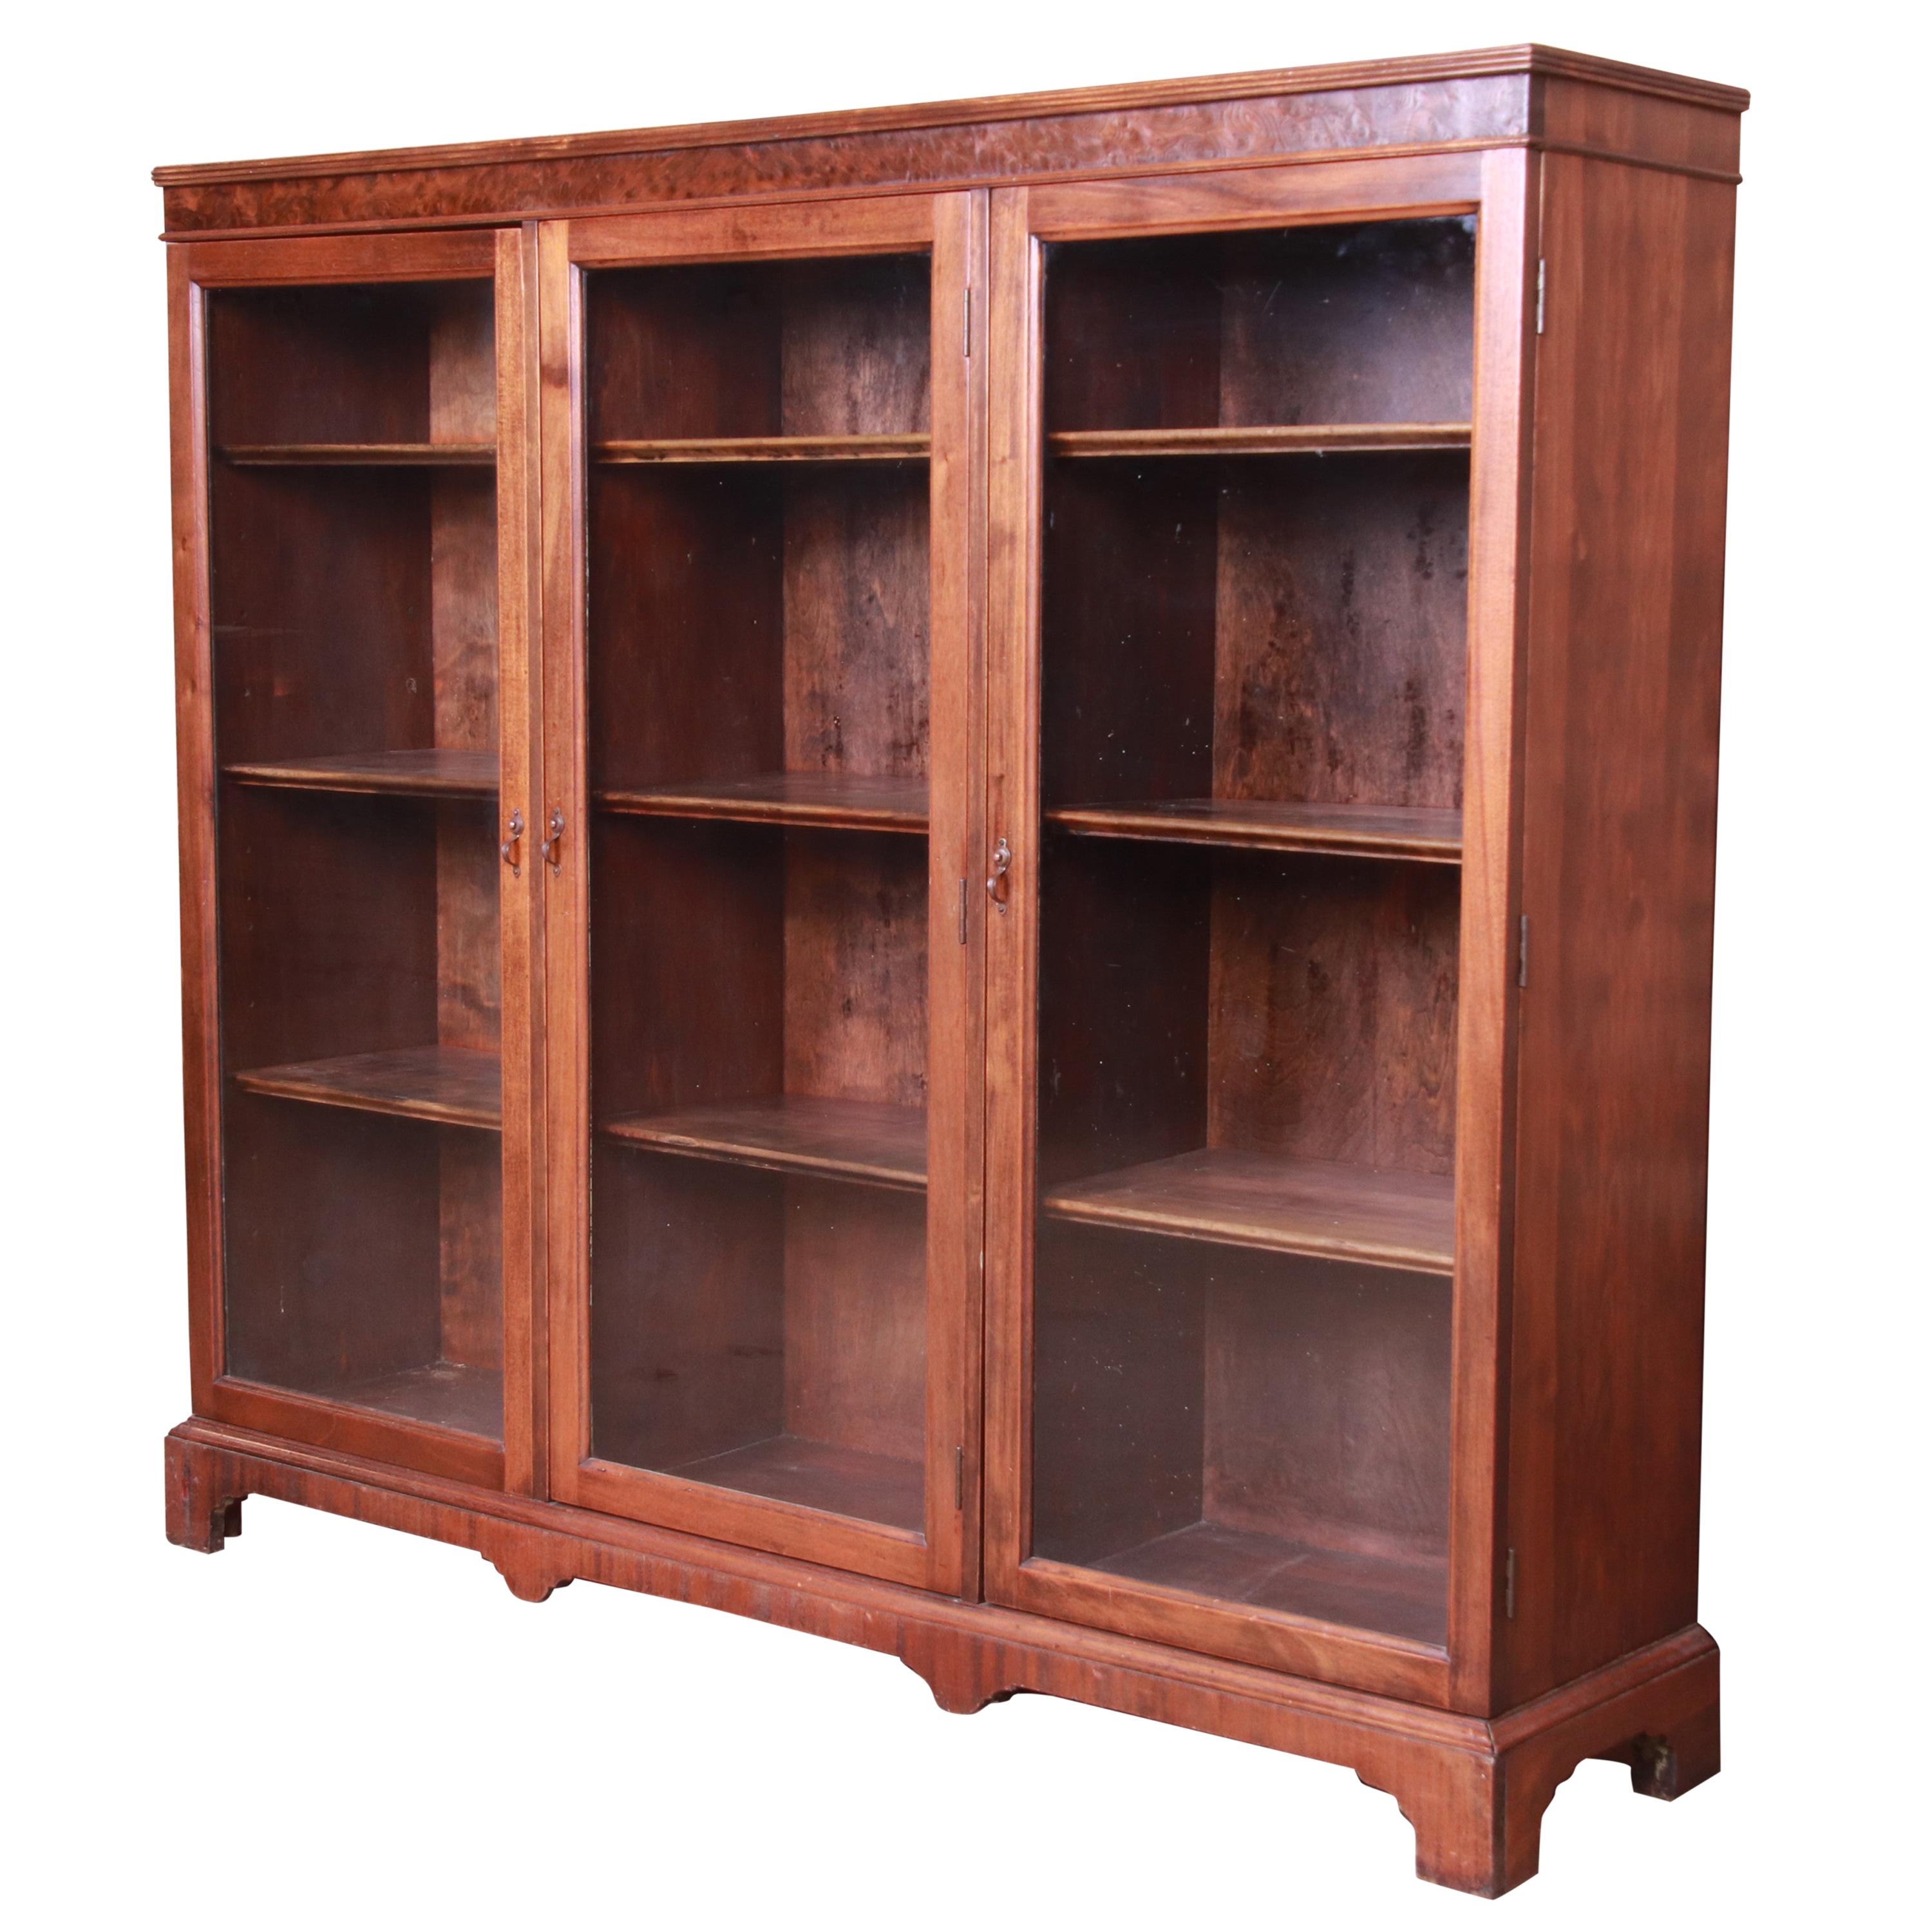 Antique Arts & Crafts Mahogany and Burled Walnut Glass Front Triple Bookcase